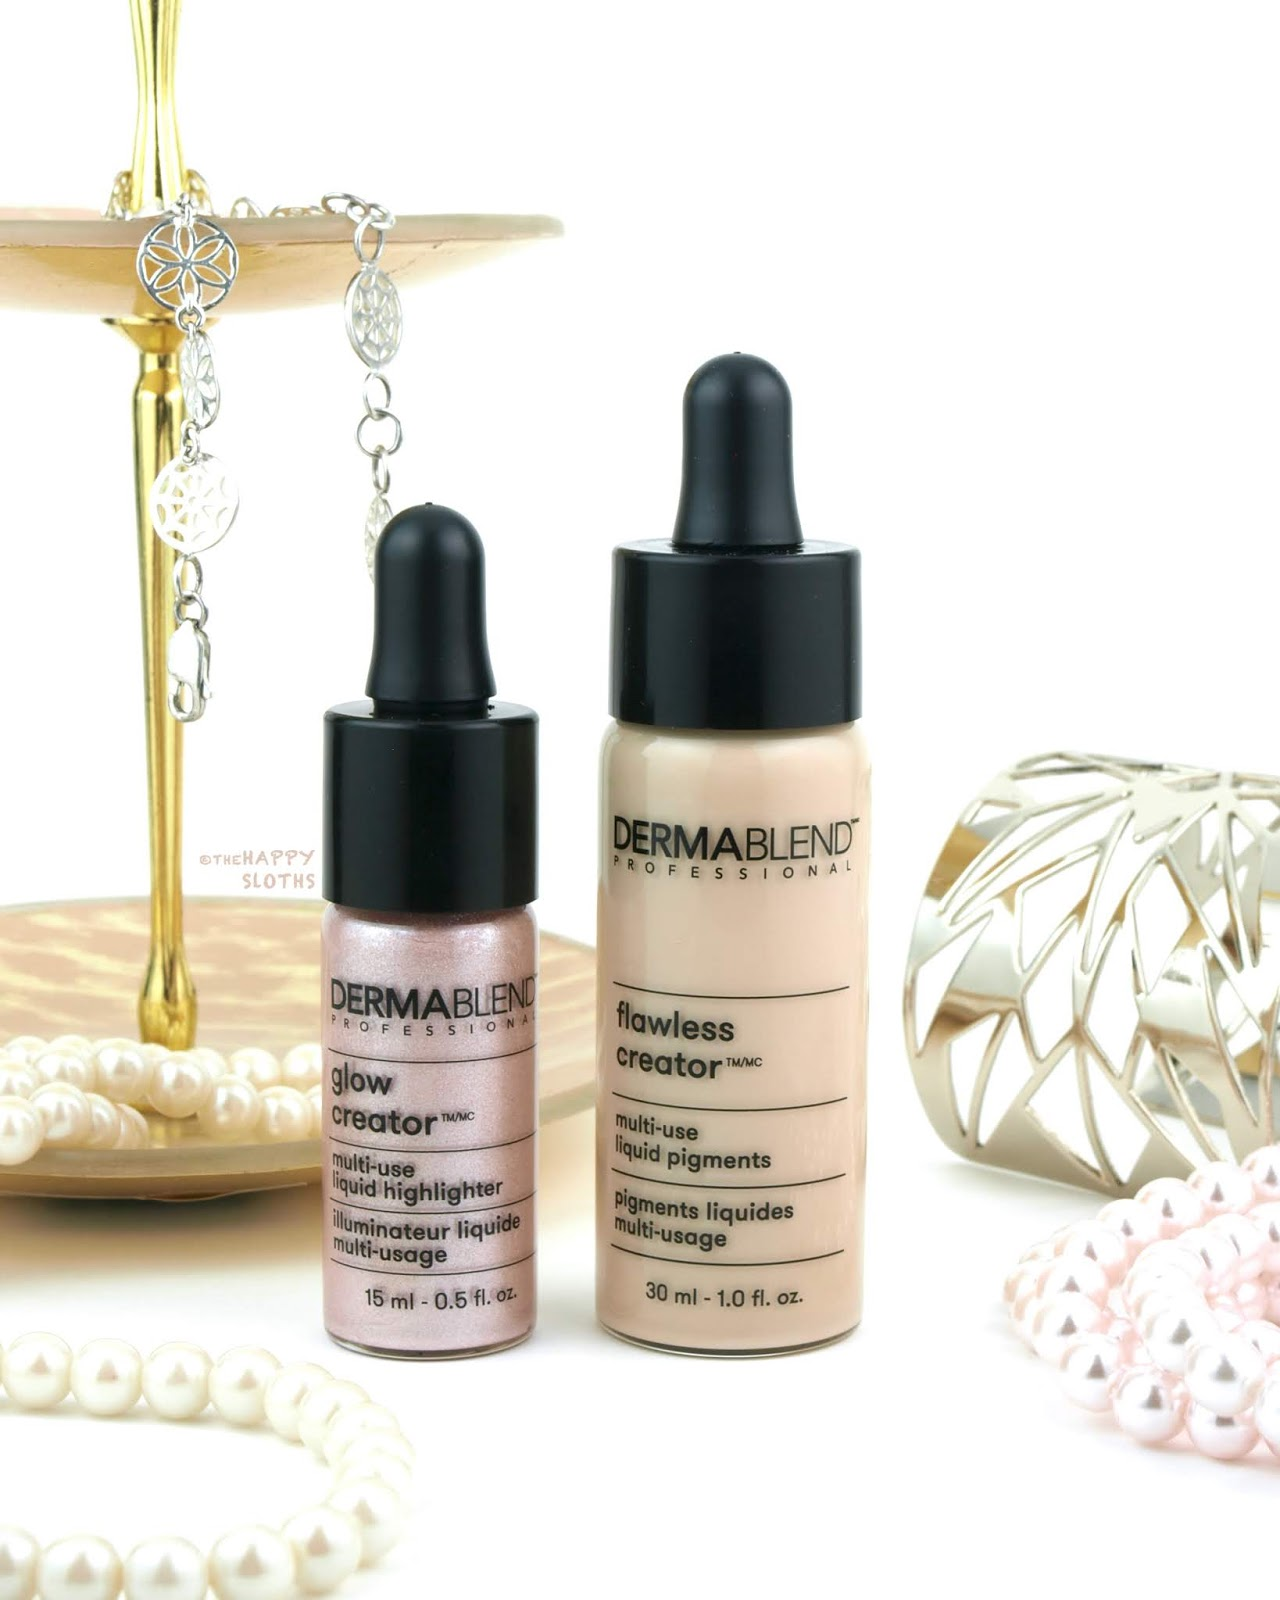 Dermablend | Flawless Creator Multi-Use Liquid Pigments & Glow Creator Multi-Use Liquid Highlighter: Review and Swatches